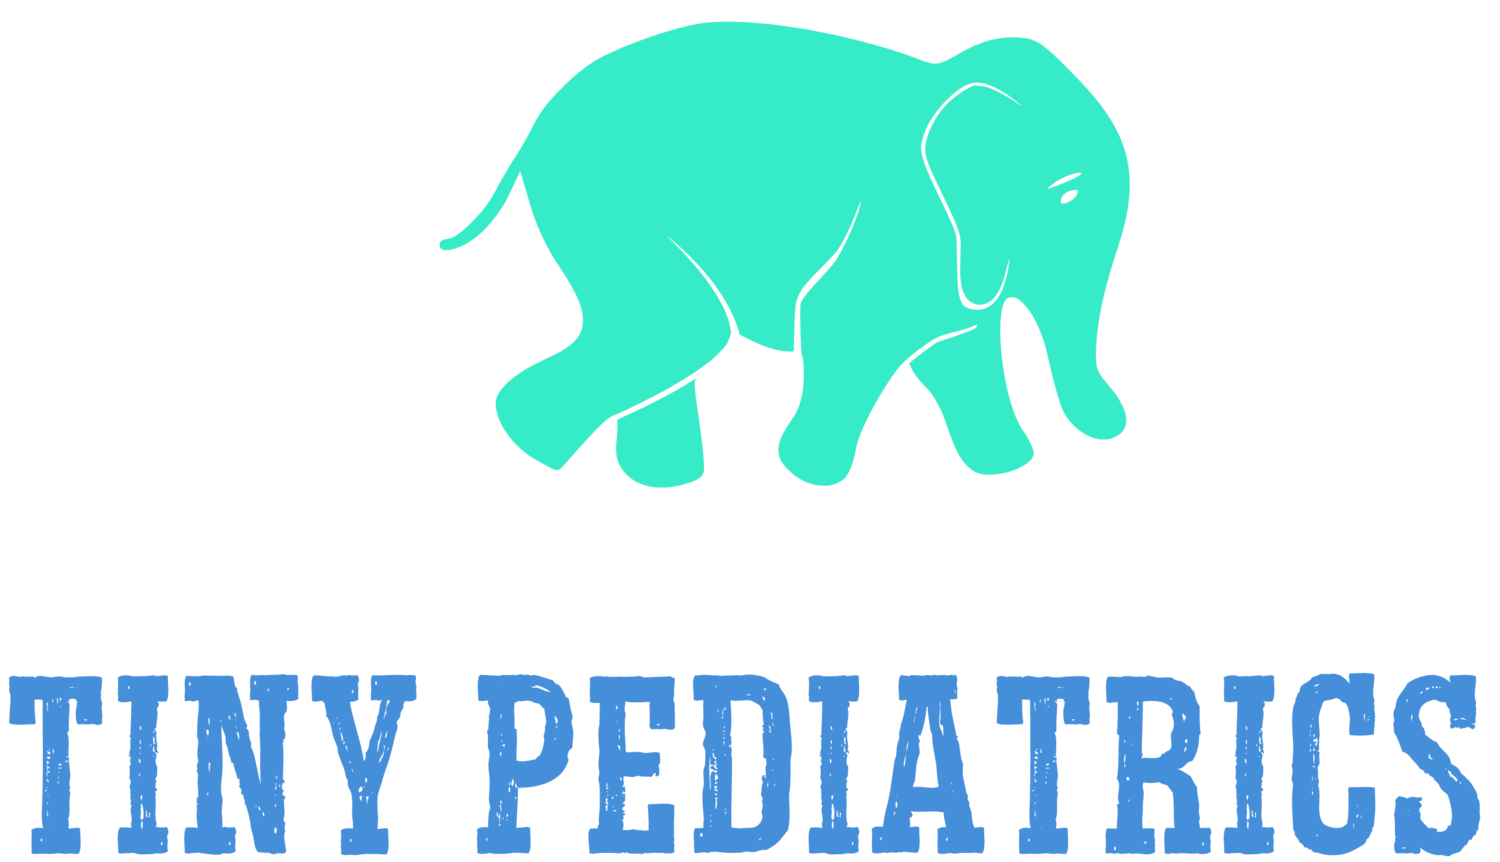 Tiny Pediatrics